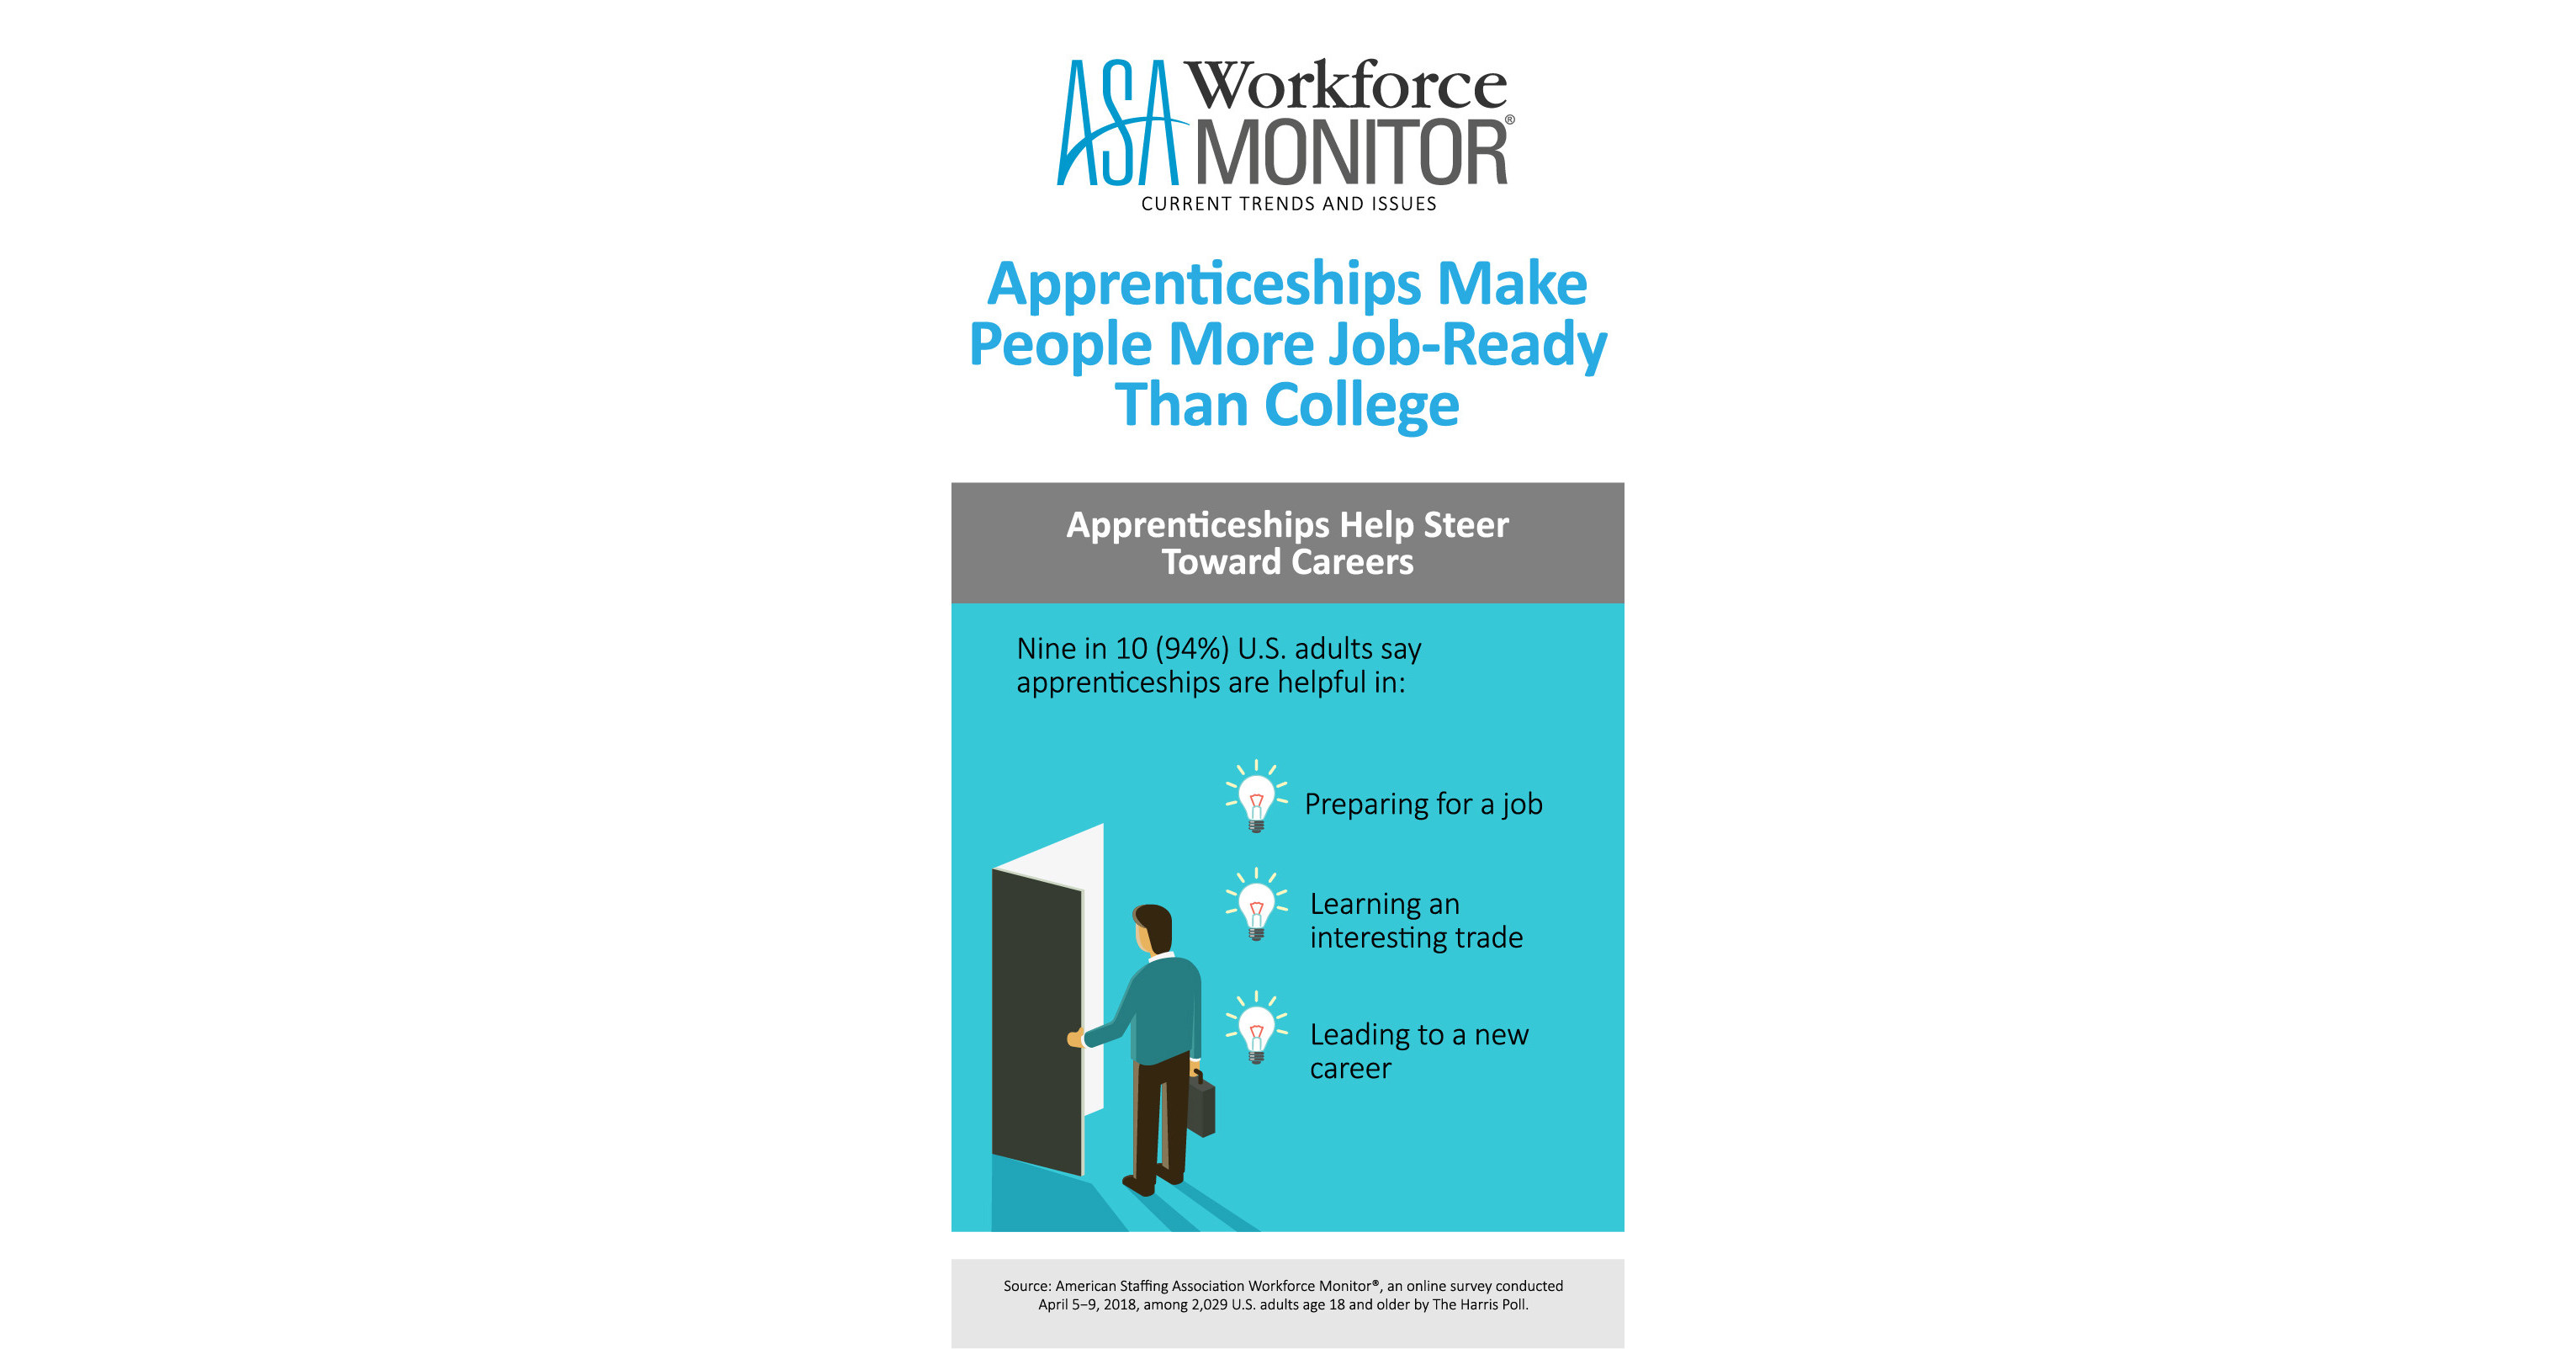 Apprenticeships Make People More Job-Ready Than College